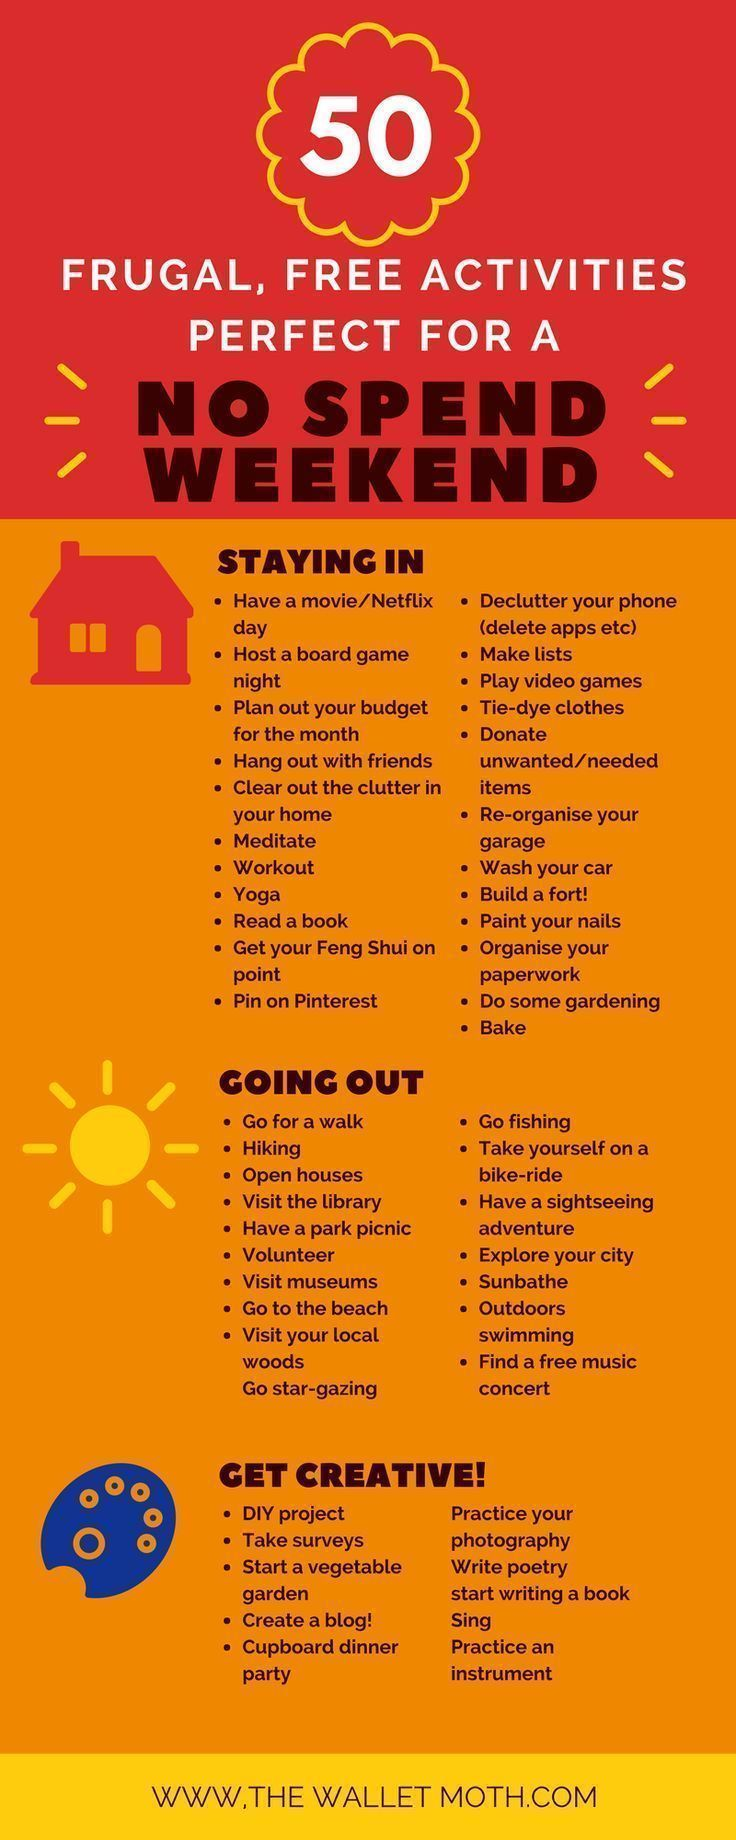 50 Free Activities for a No Spend Weekend!